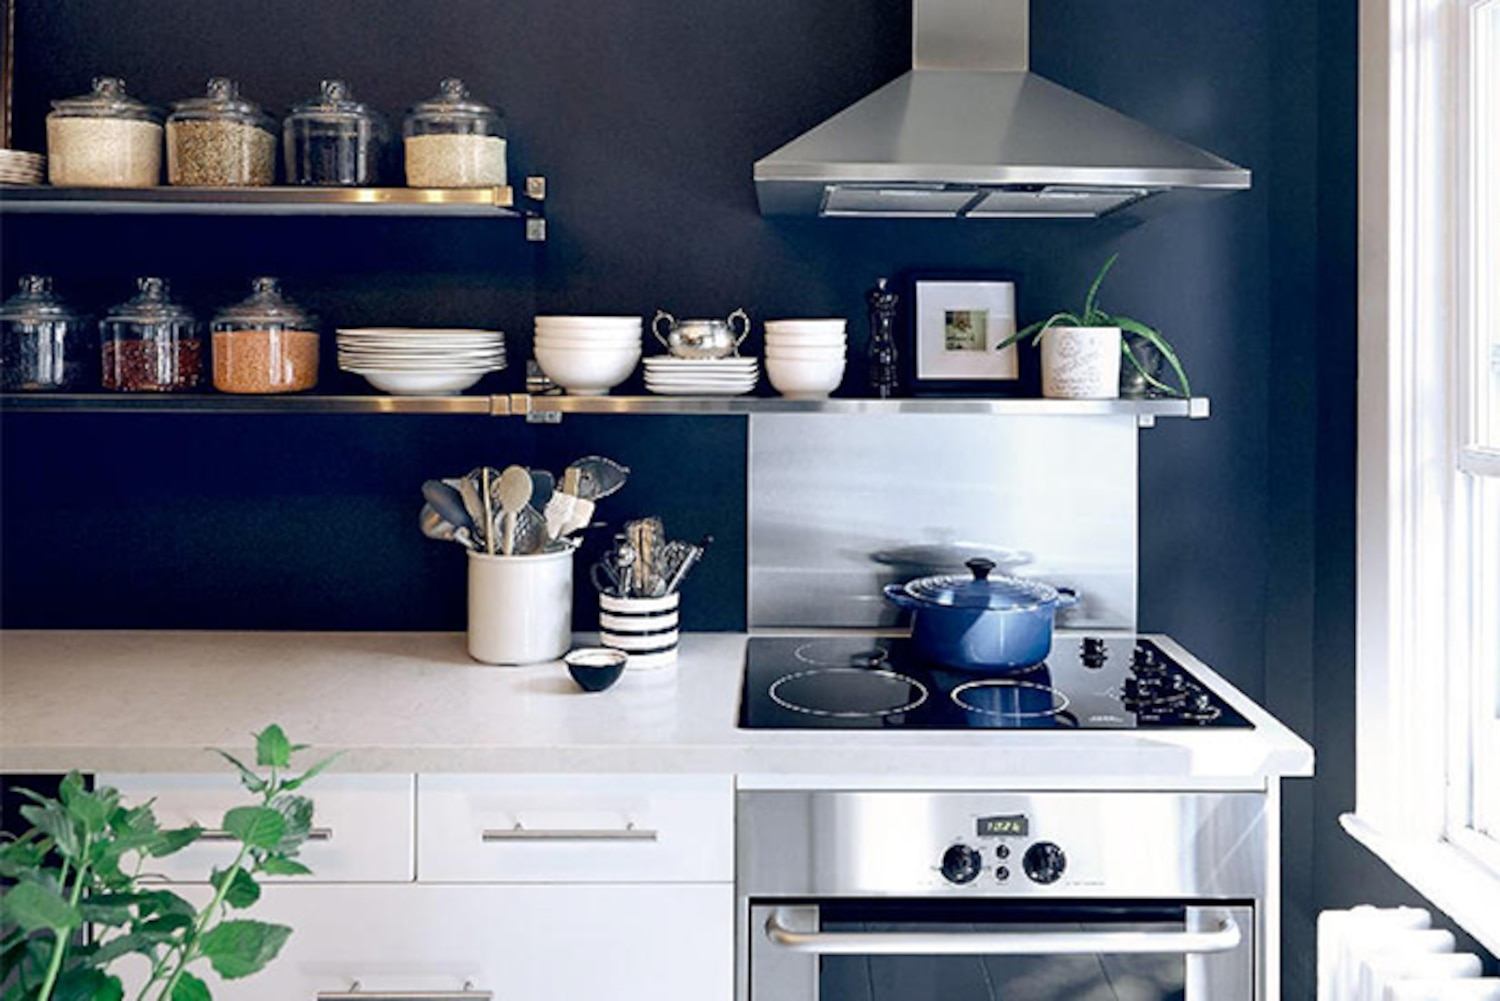 Kitchen Island Ideas 4 Colourful Countertop Looks Canadian Living